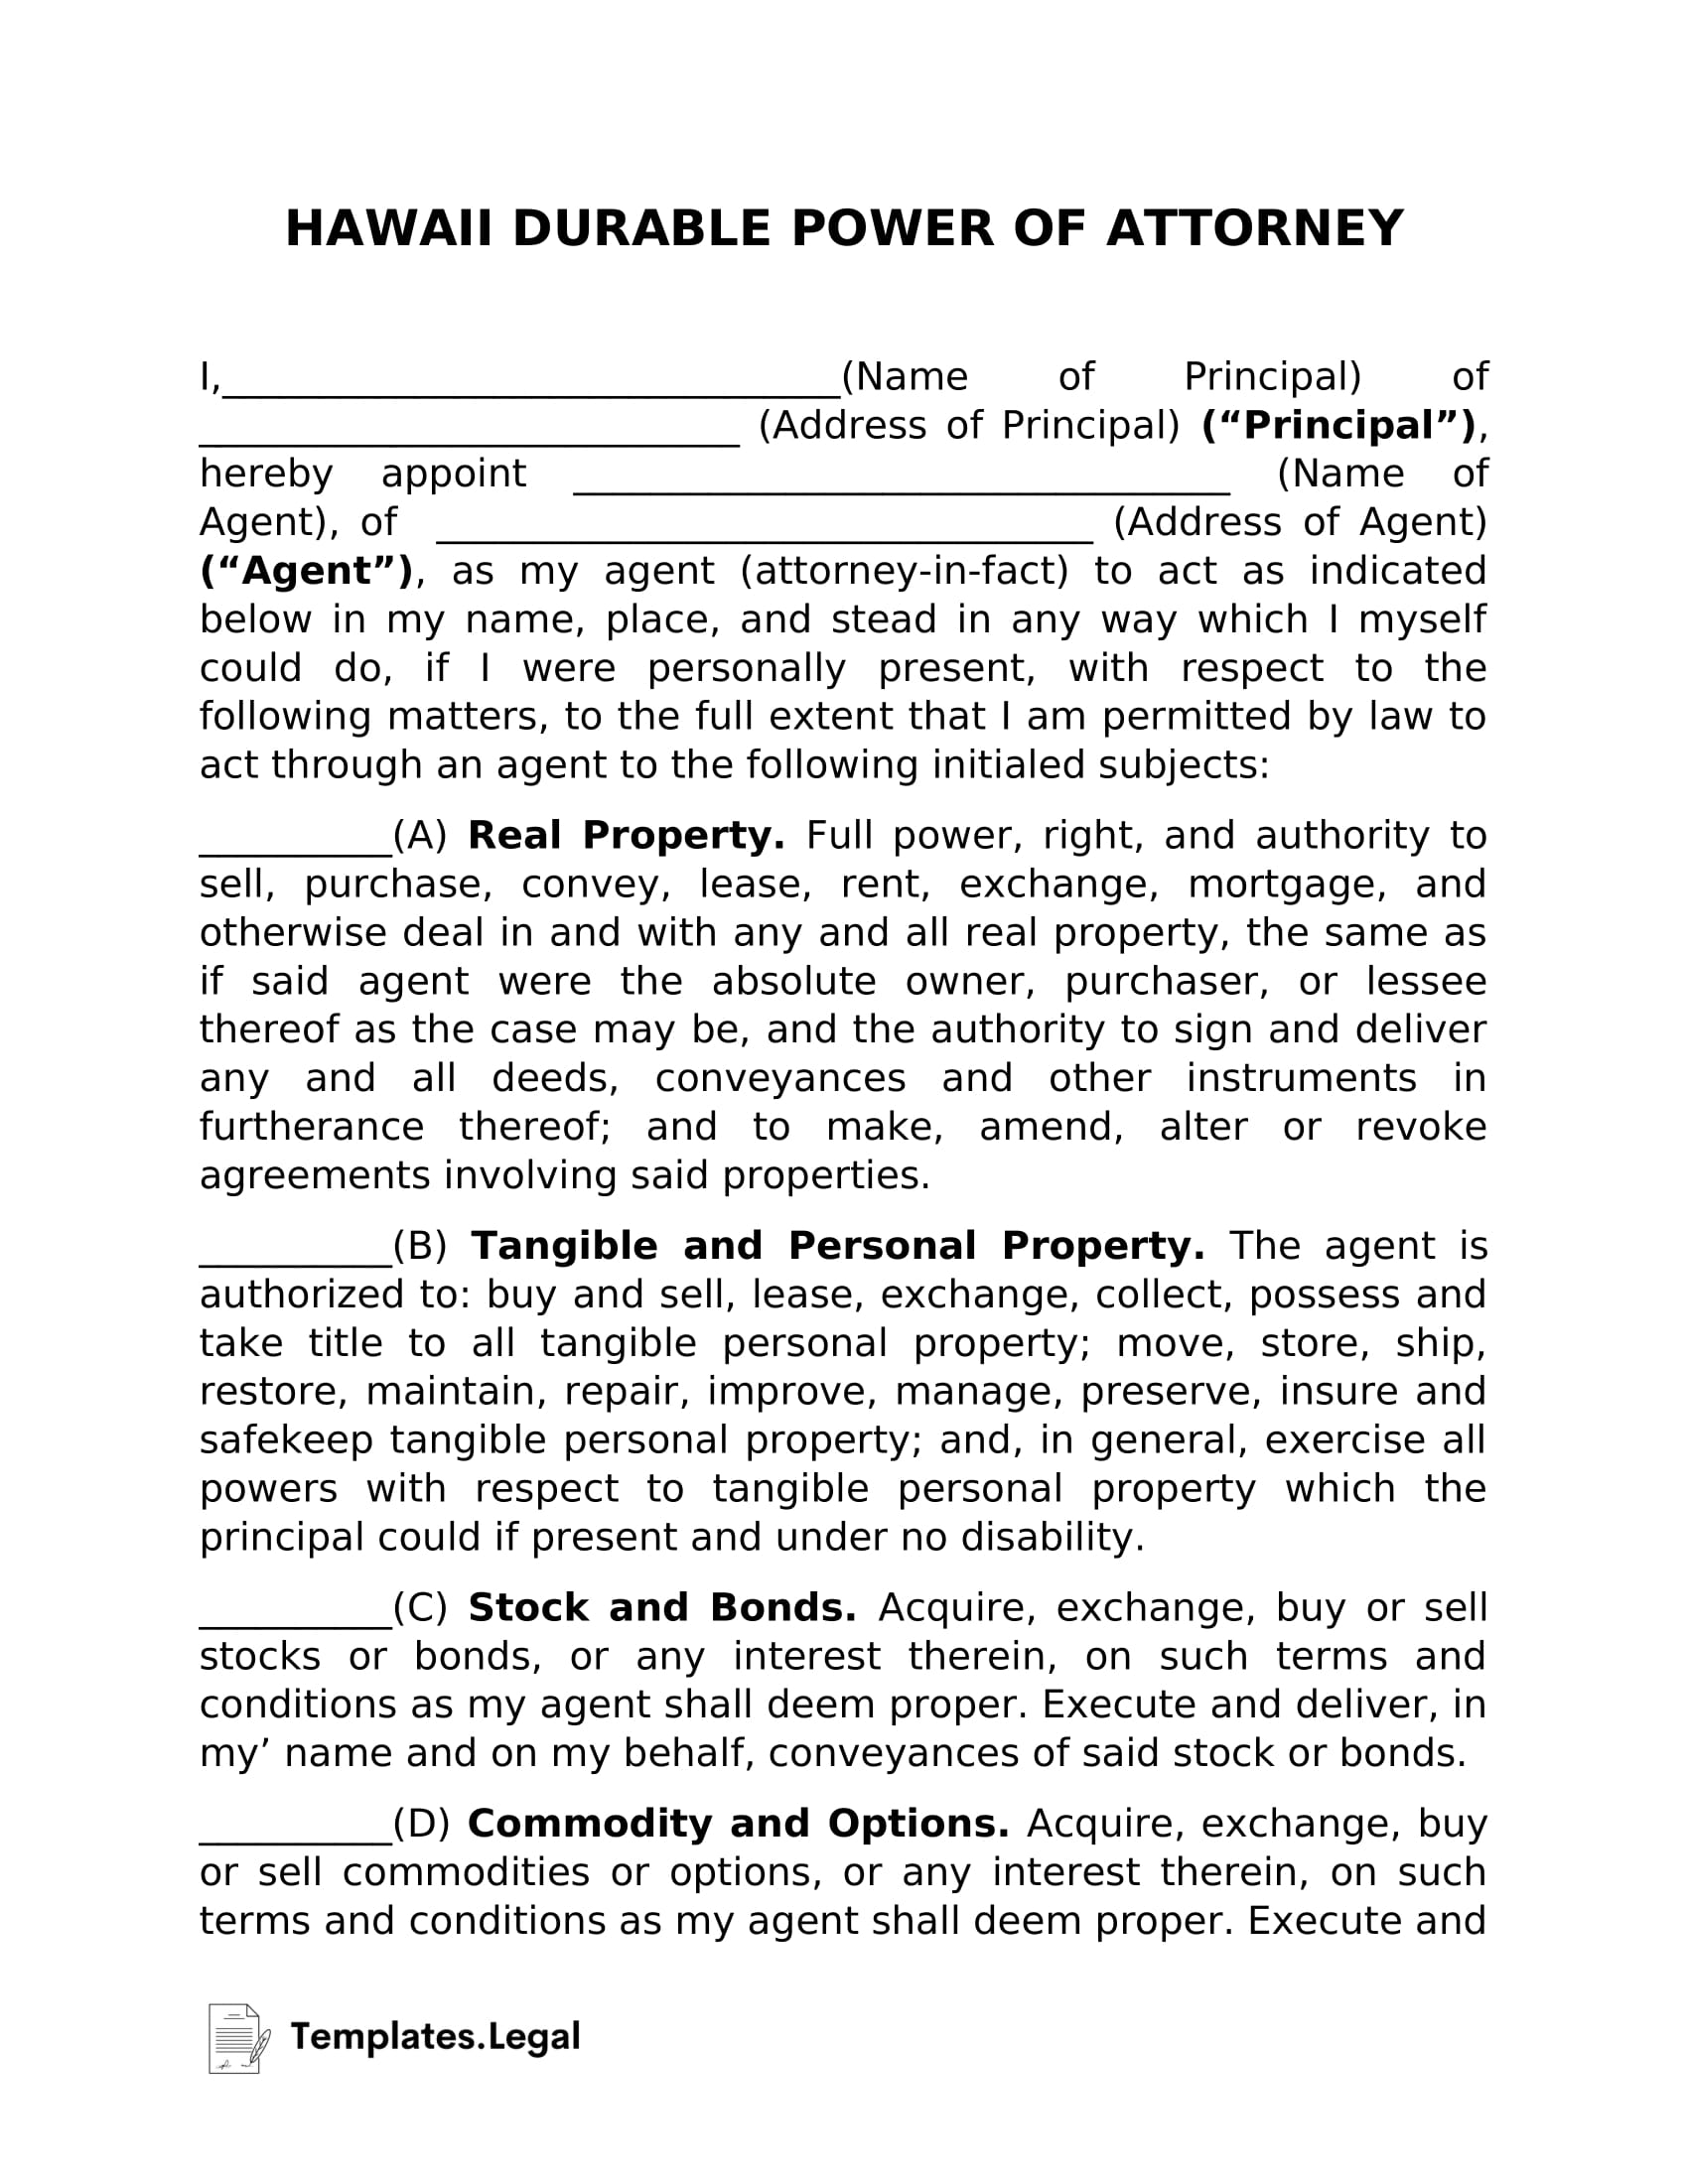 Hawaii Durable Power of Attorney - Templates.Legal